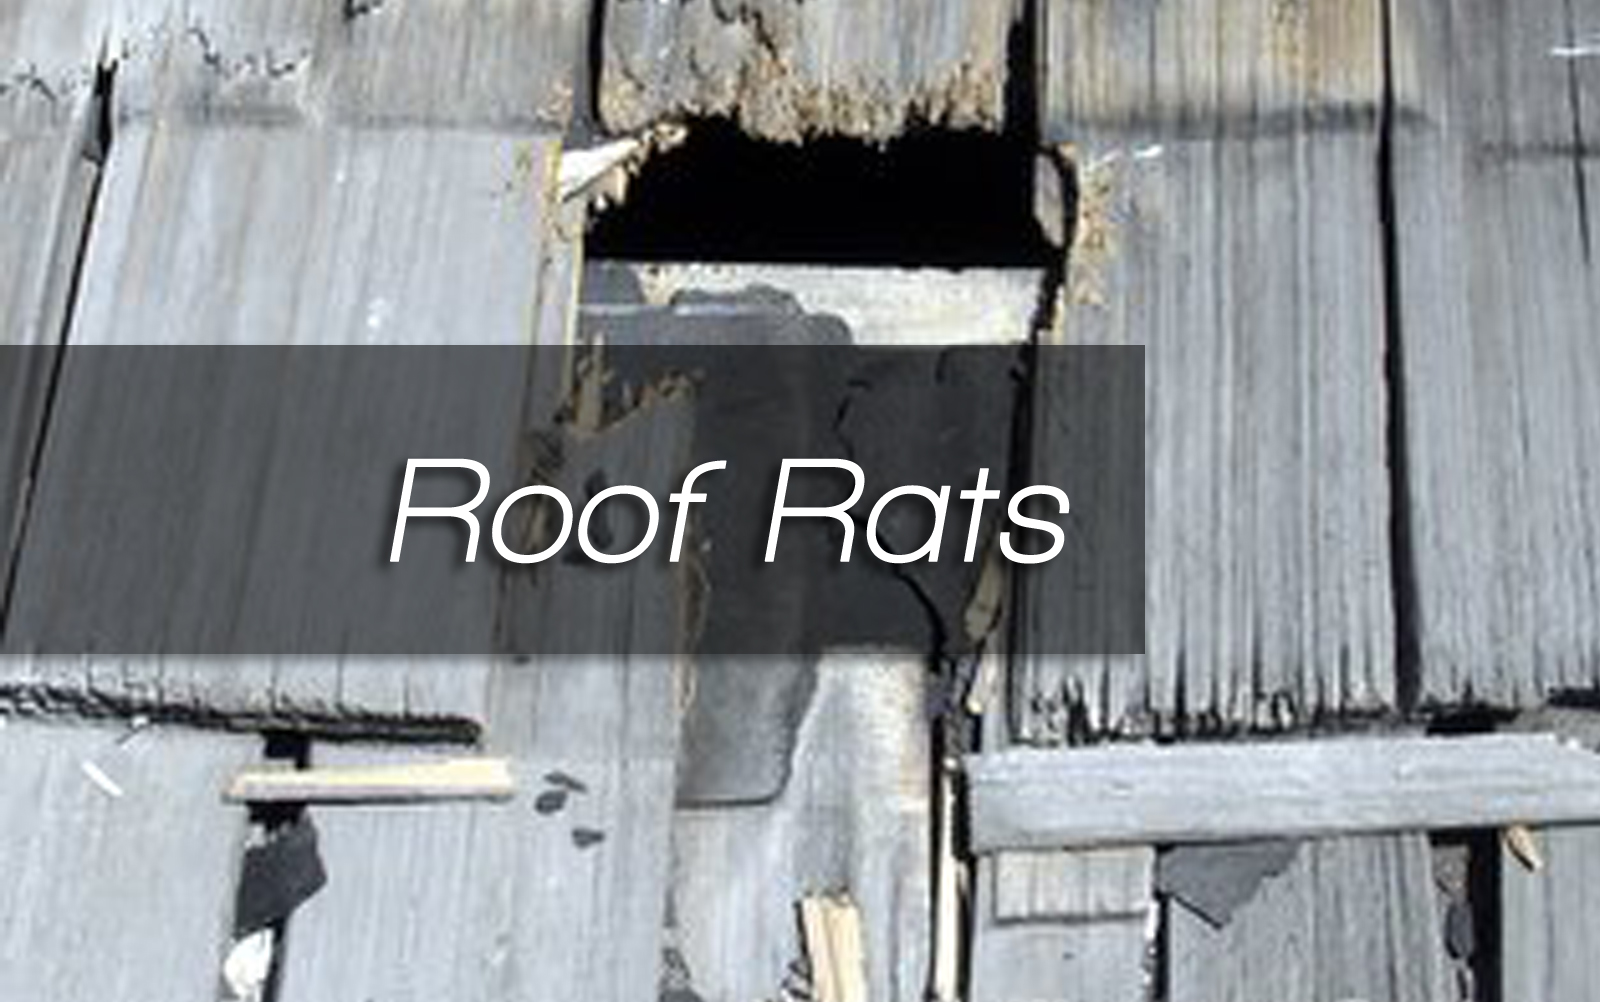 Roof Rats – Article by Jim Fontaine